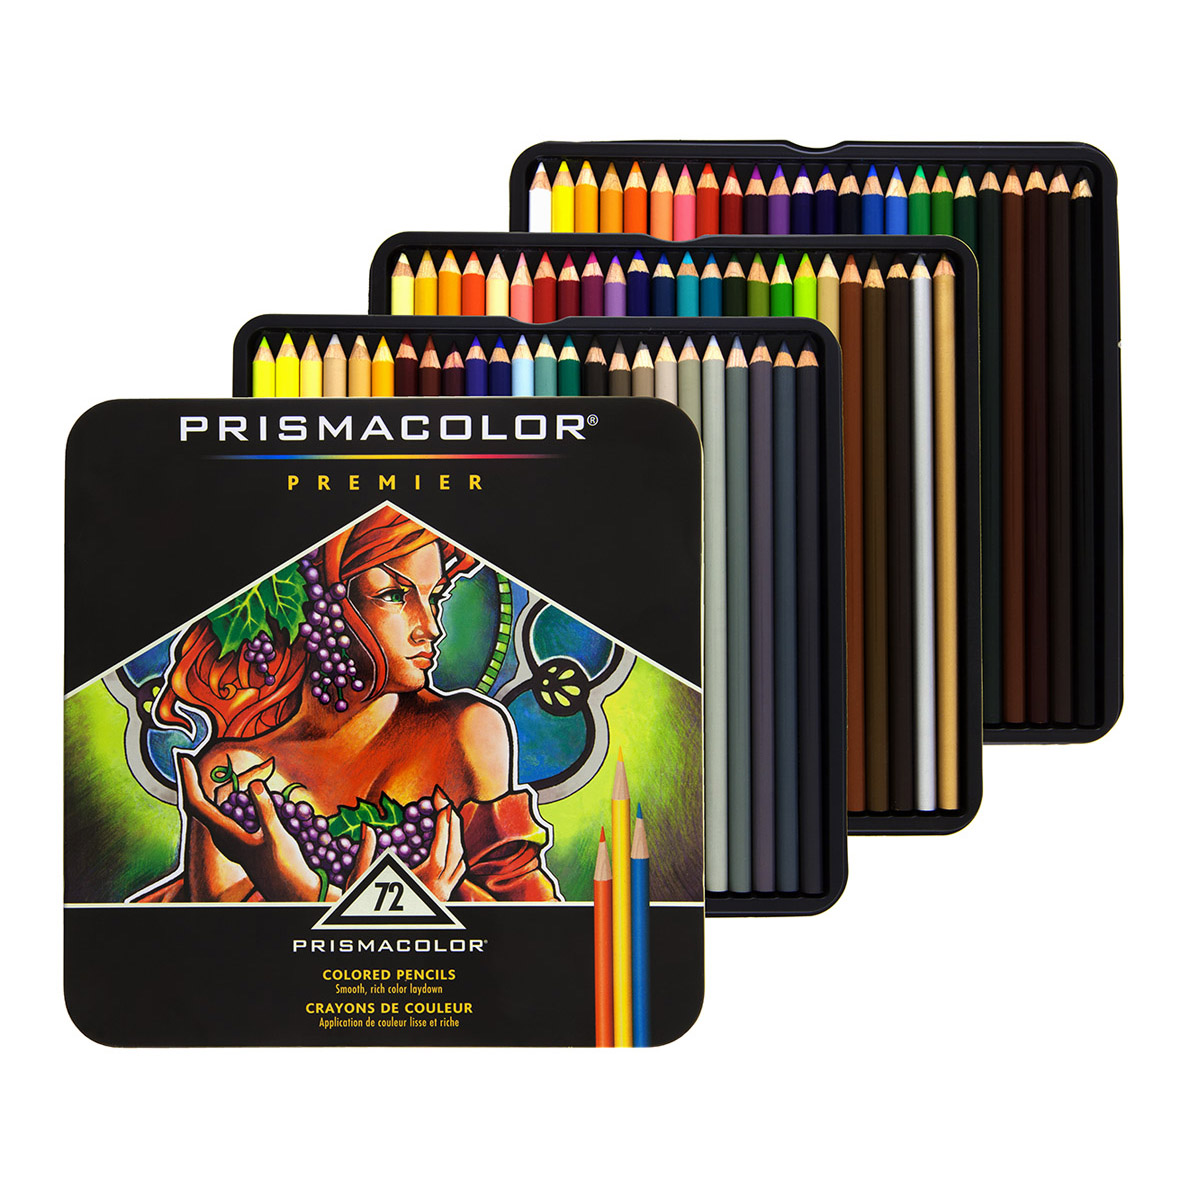 Prismacolor Premier Colored Pencils 72 Set Soft Core